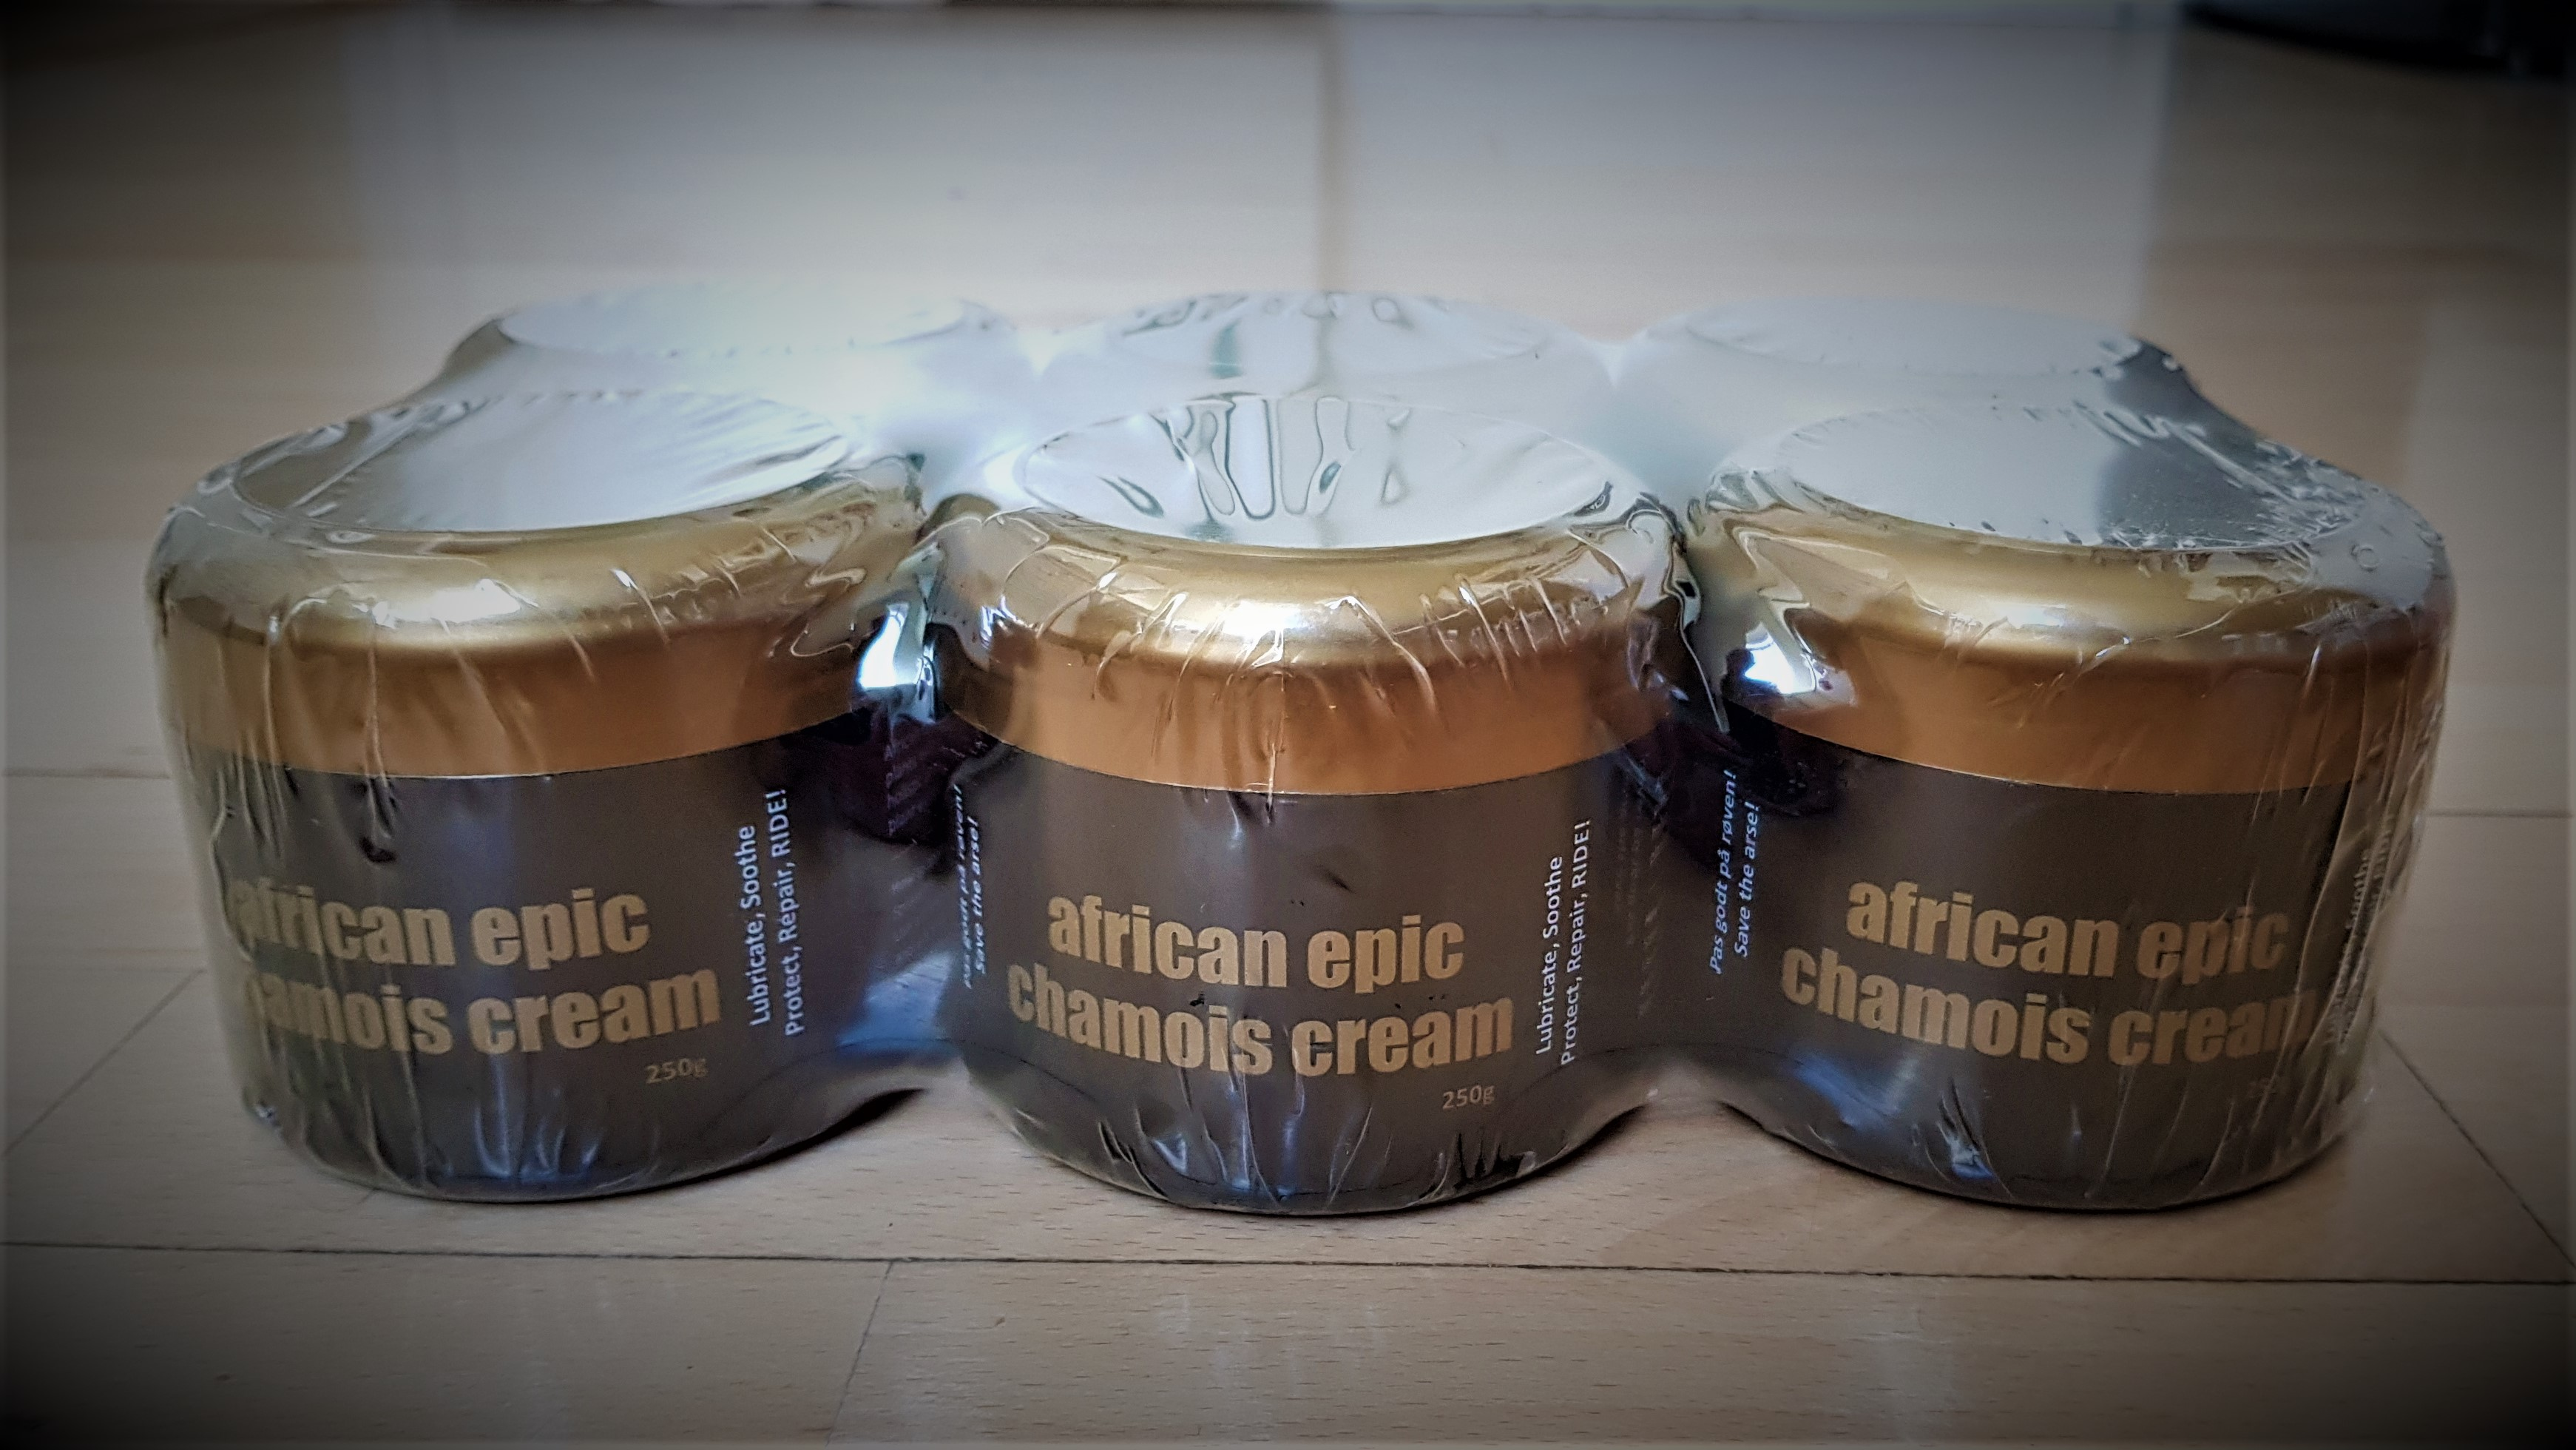 African Epic Chamois Creme (6 pack)